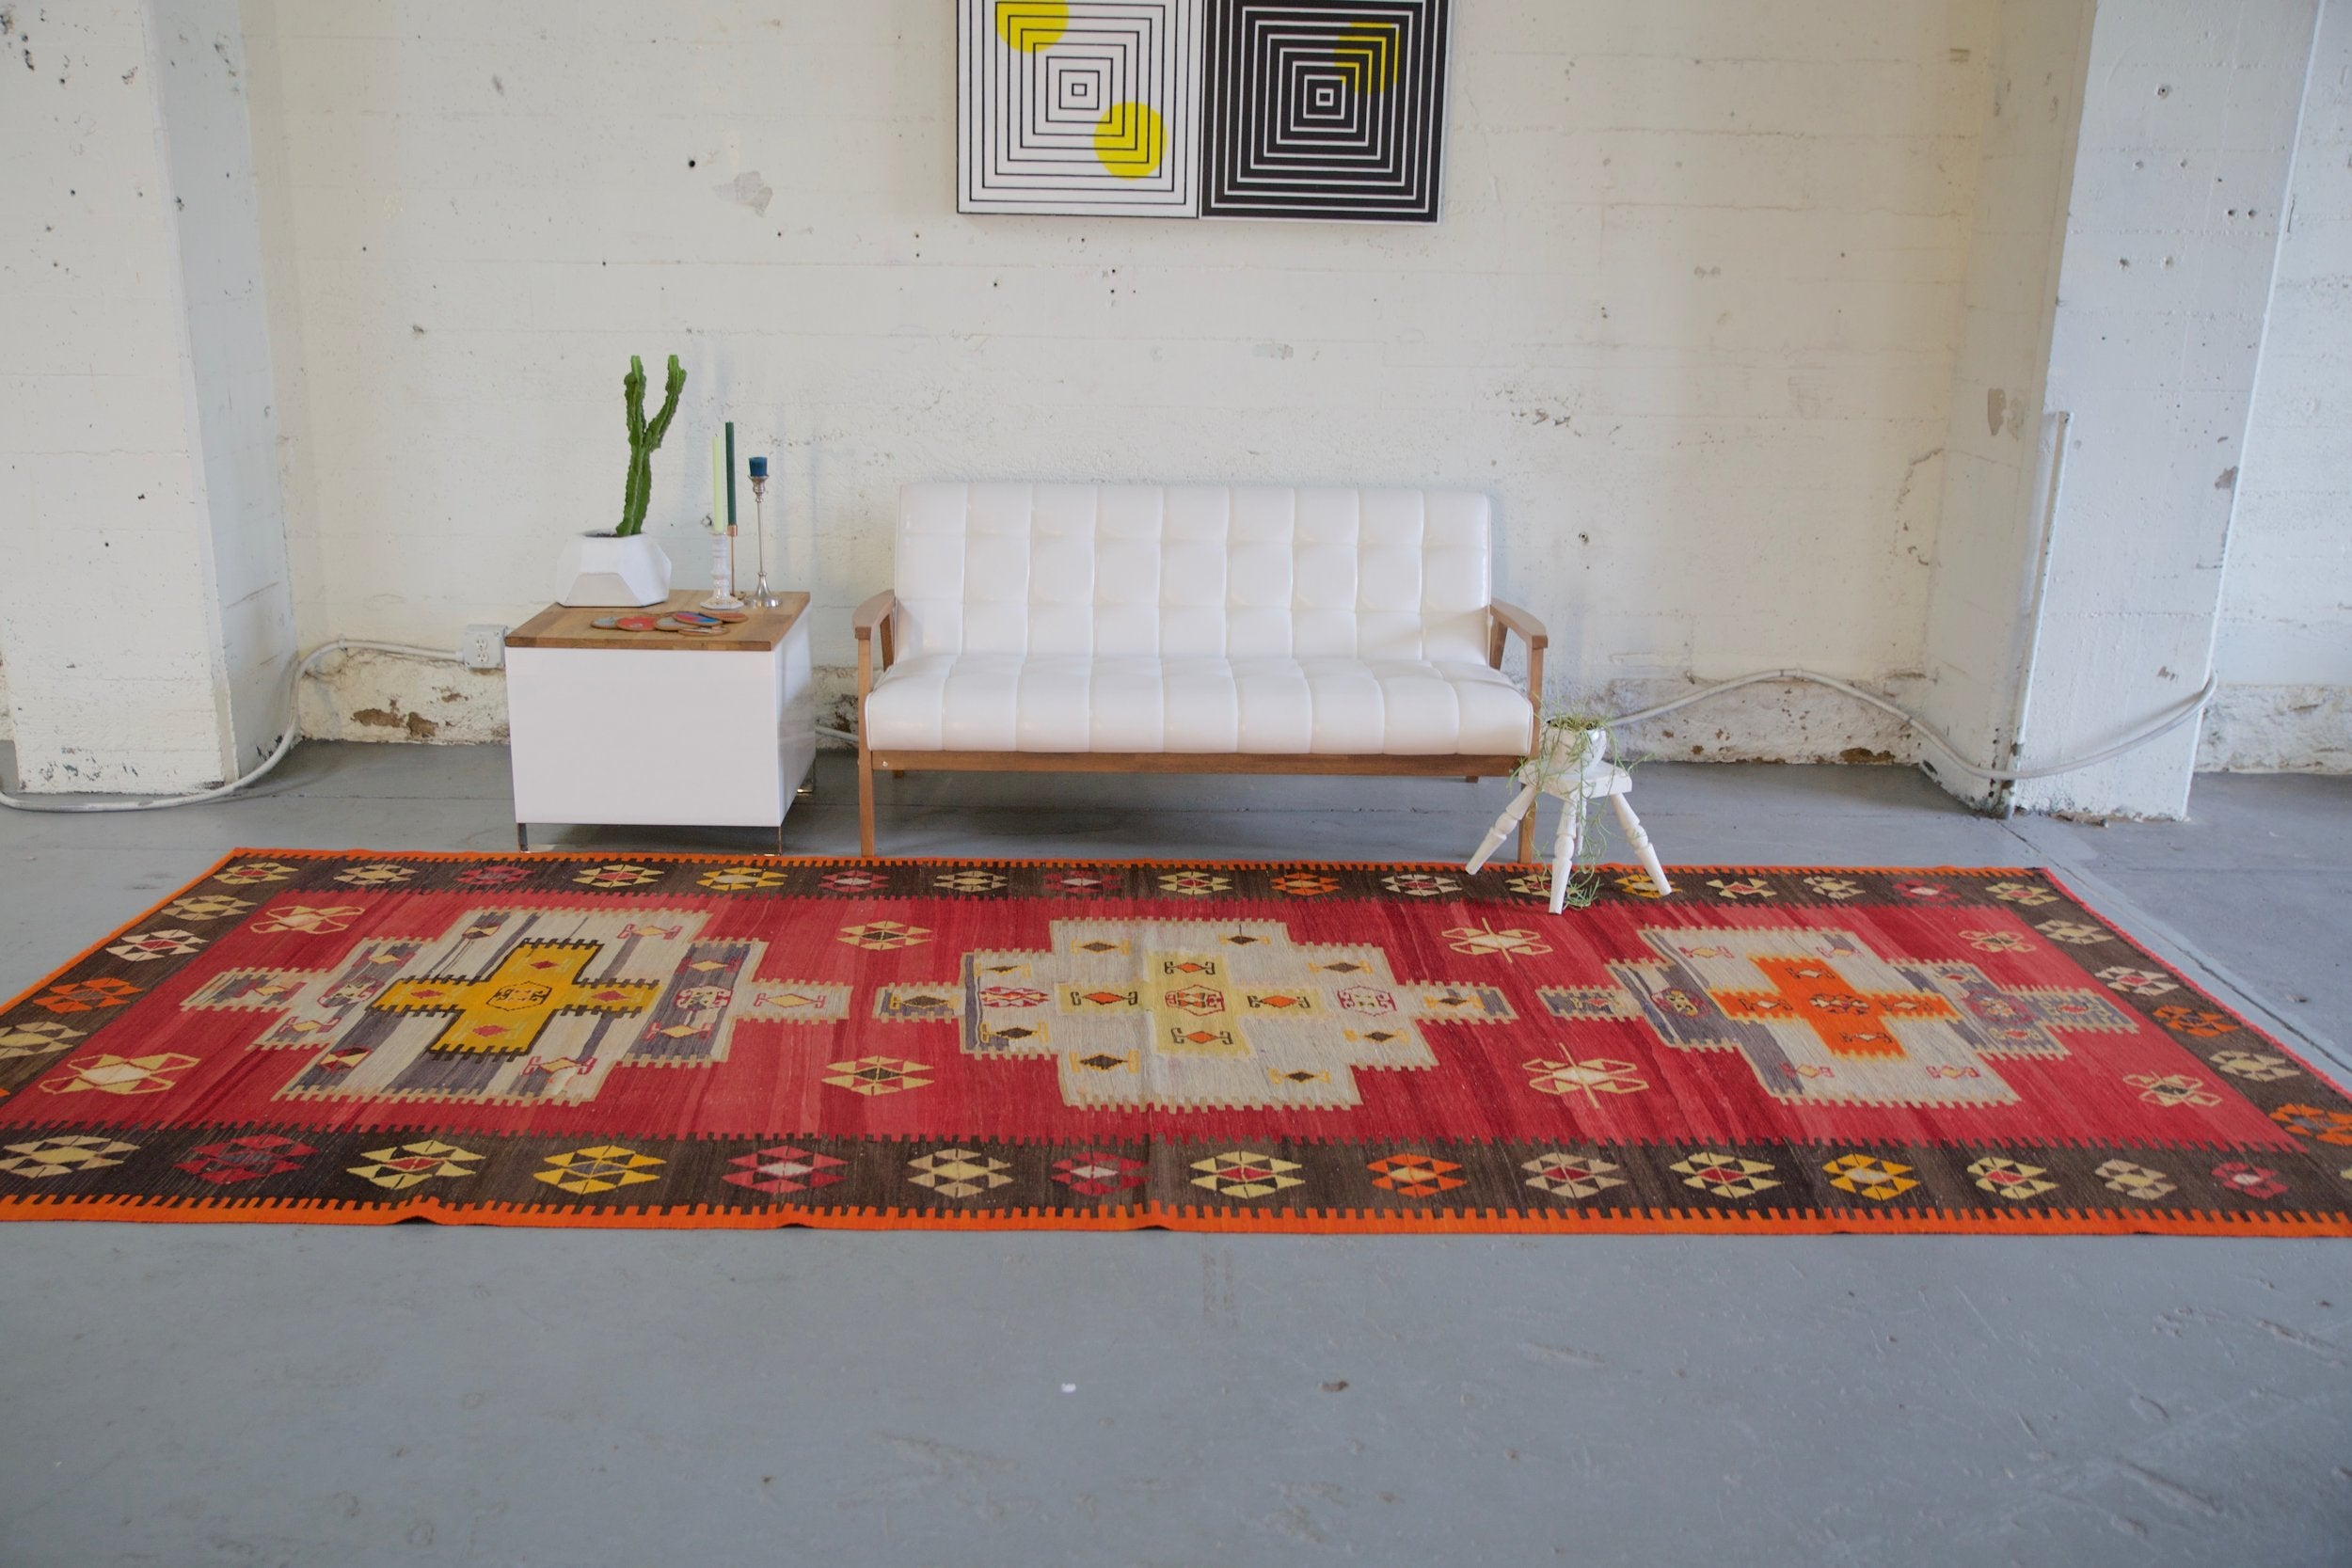 turkish rug, vintage rug, flat weave, kilim rug, large area rug, square rug, Wild Shaman, Portland, Oregon, rug store, rug shop, local shop,  bright colors, area rug, bold color